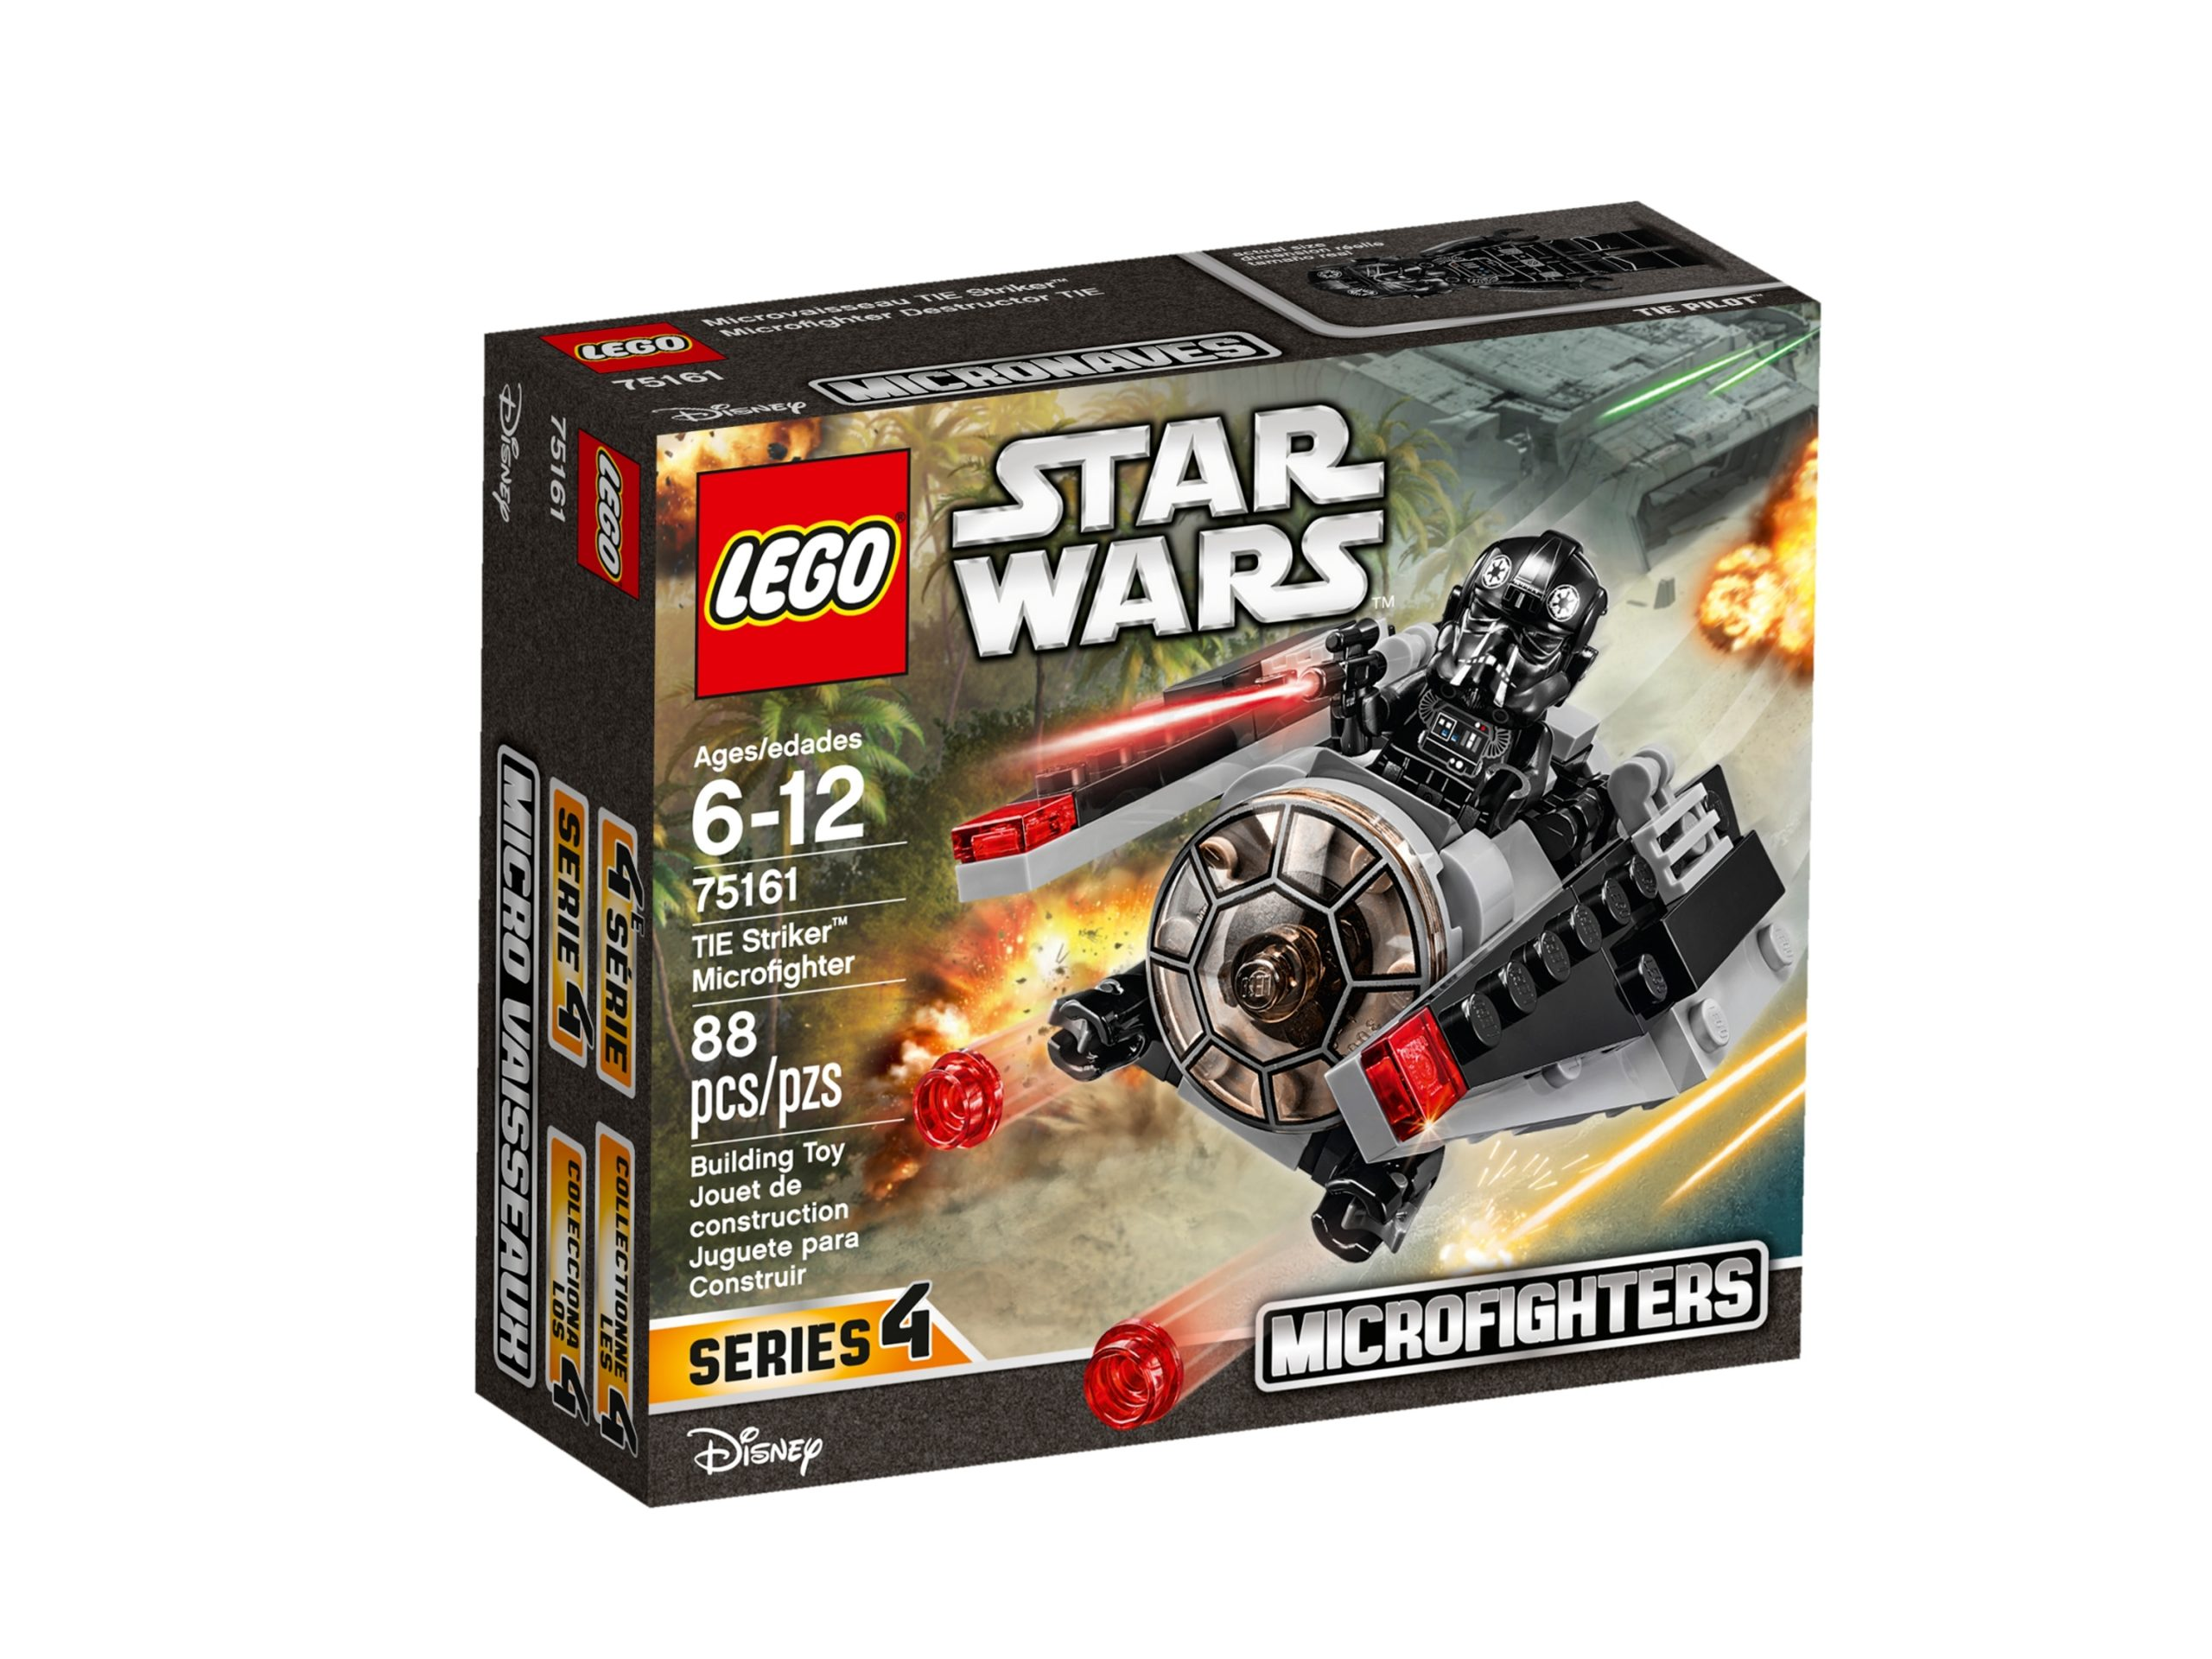 lego 75161 tie striker microfighter scaled